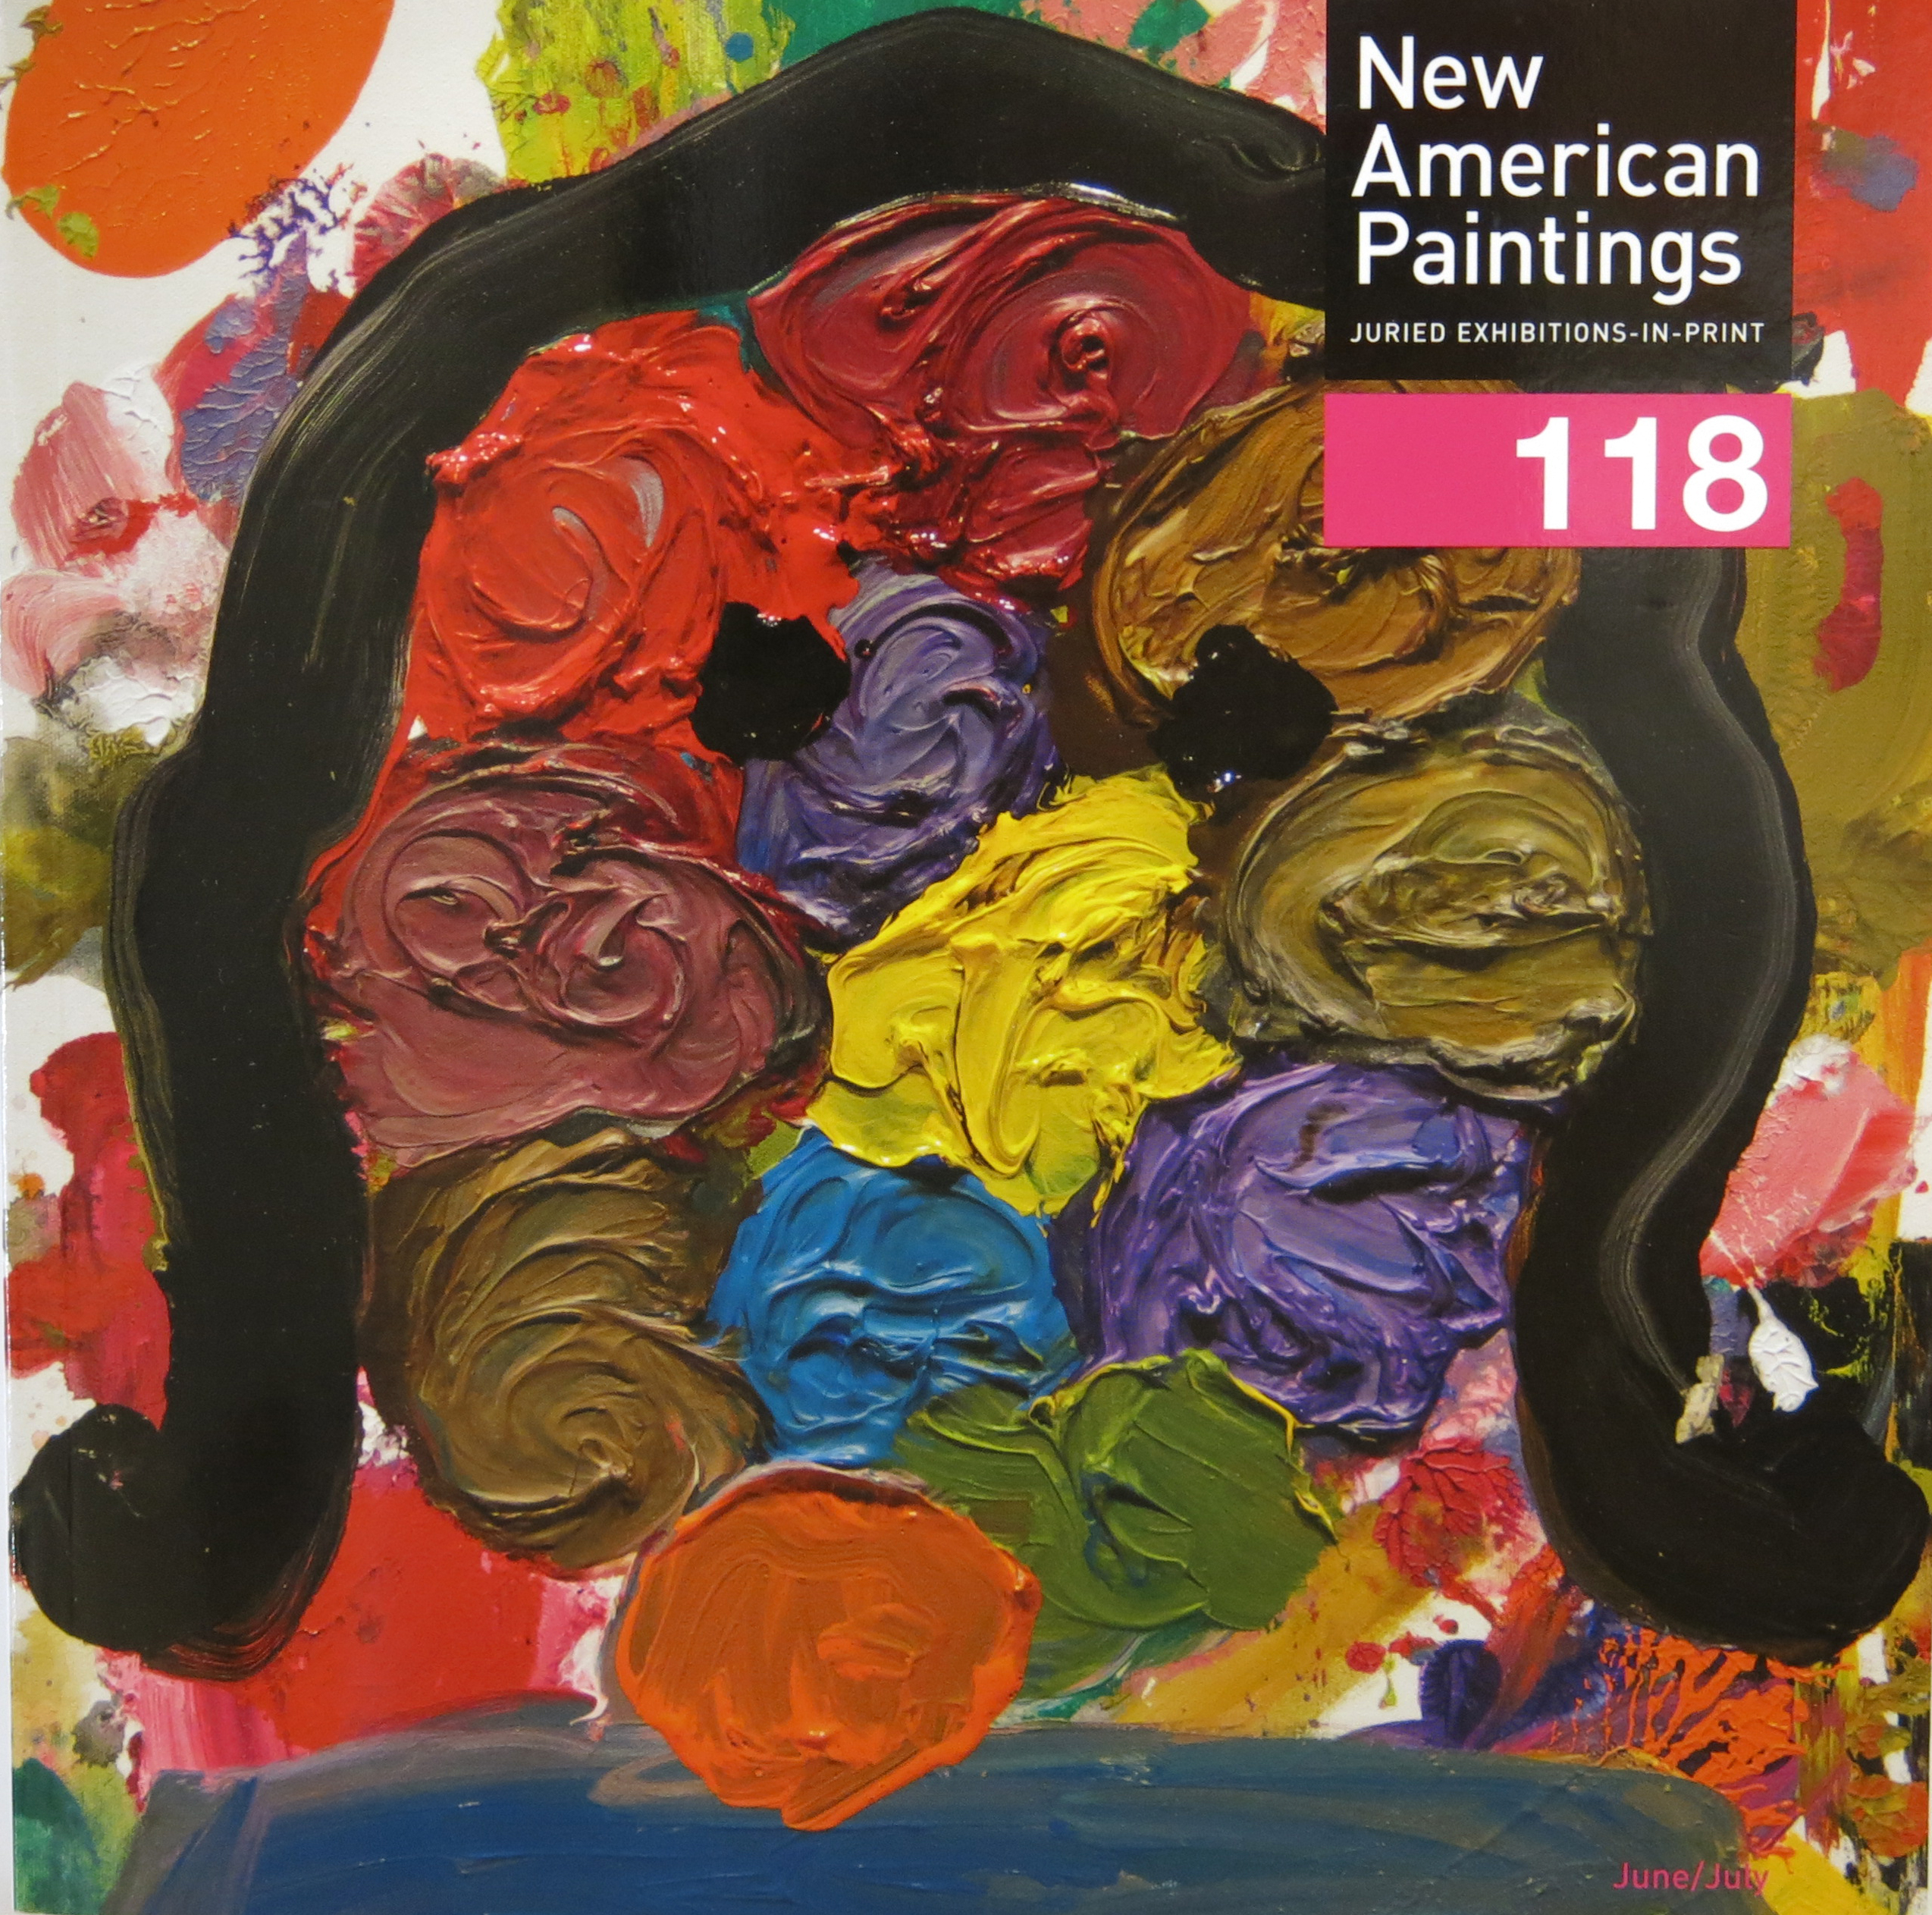 New American Paintings 2015